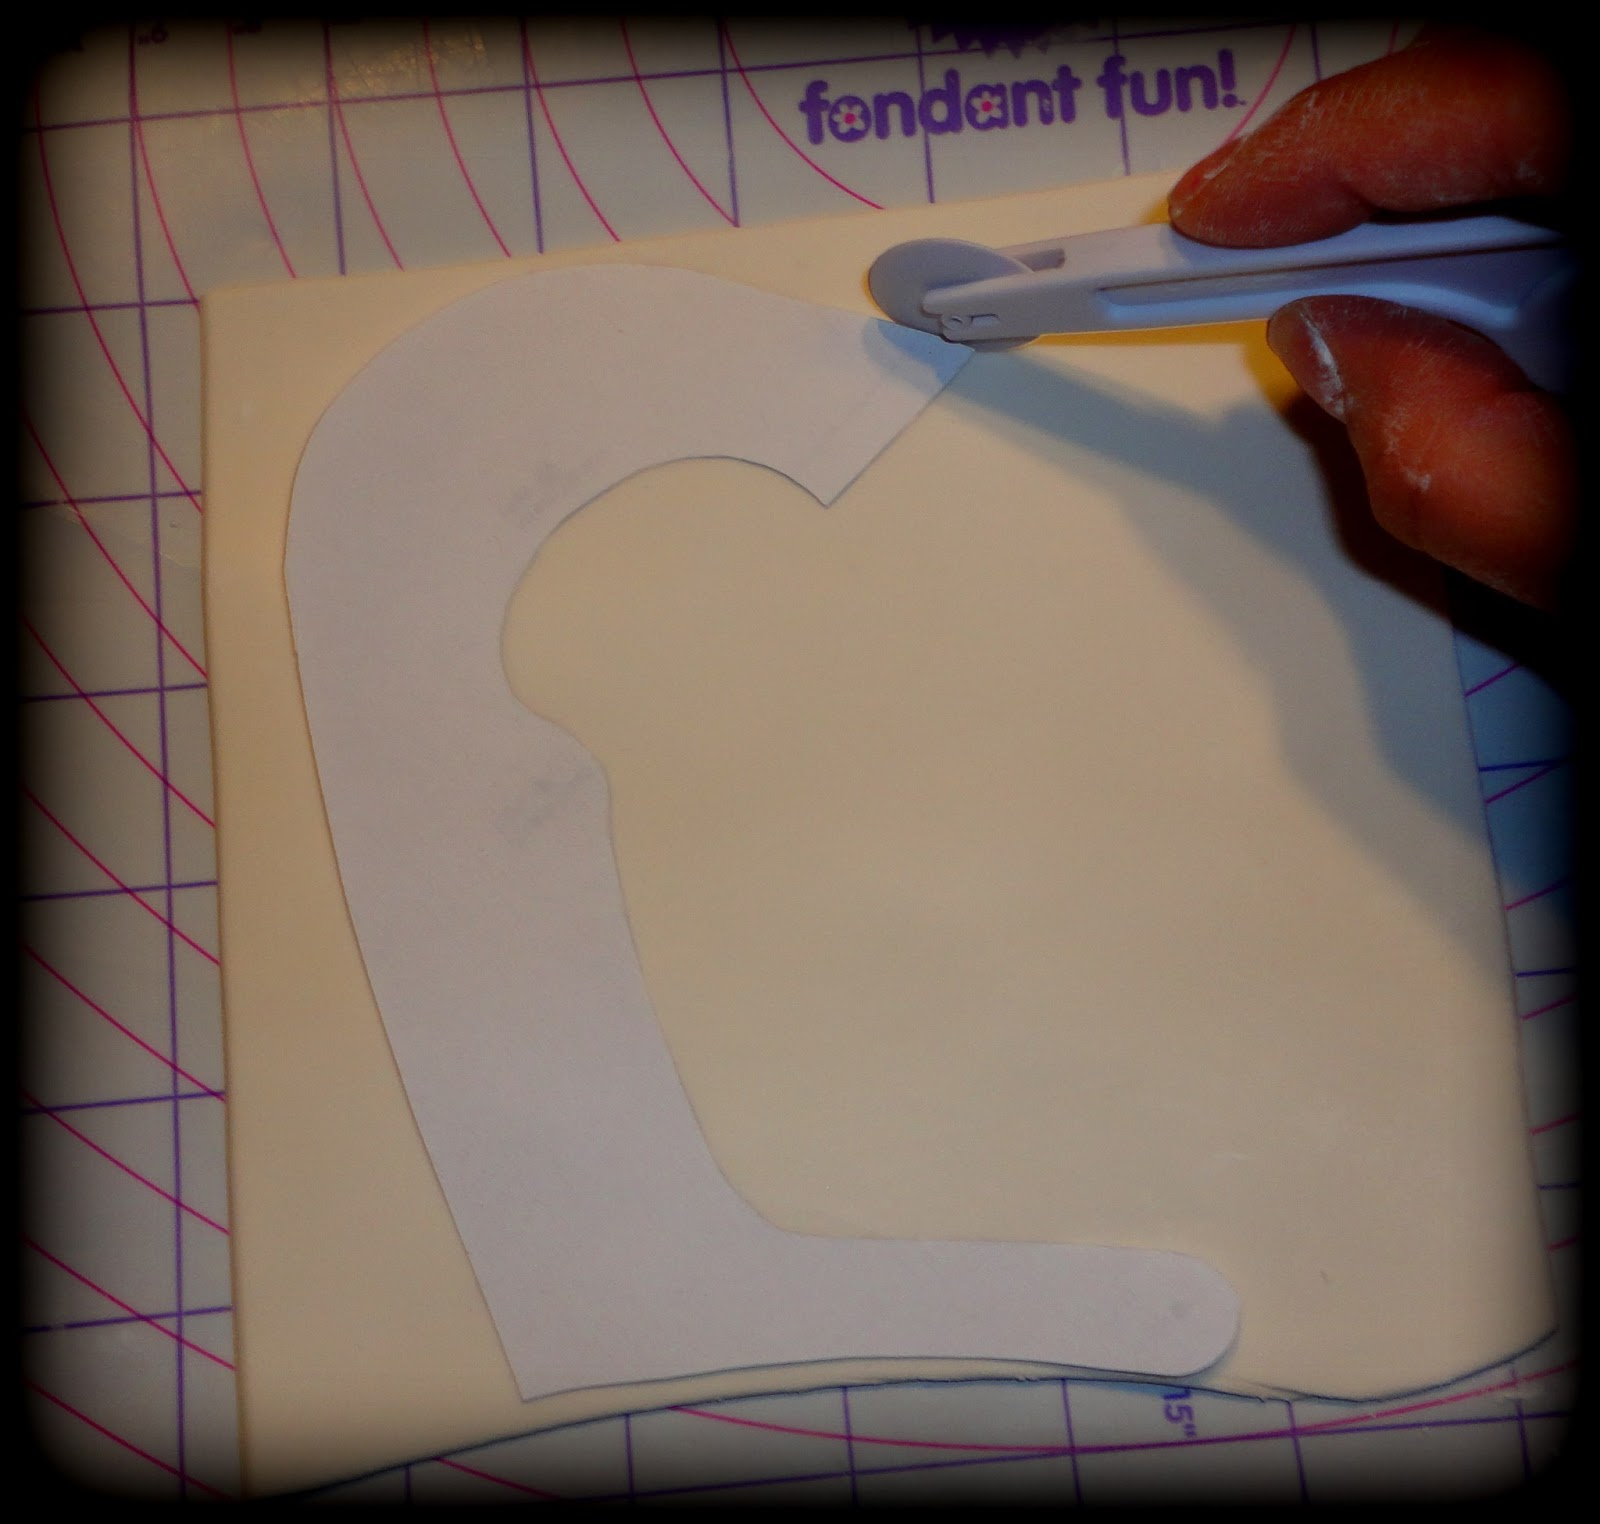 Baby Girl Shoe Template For Fondant